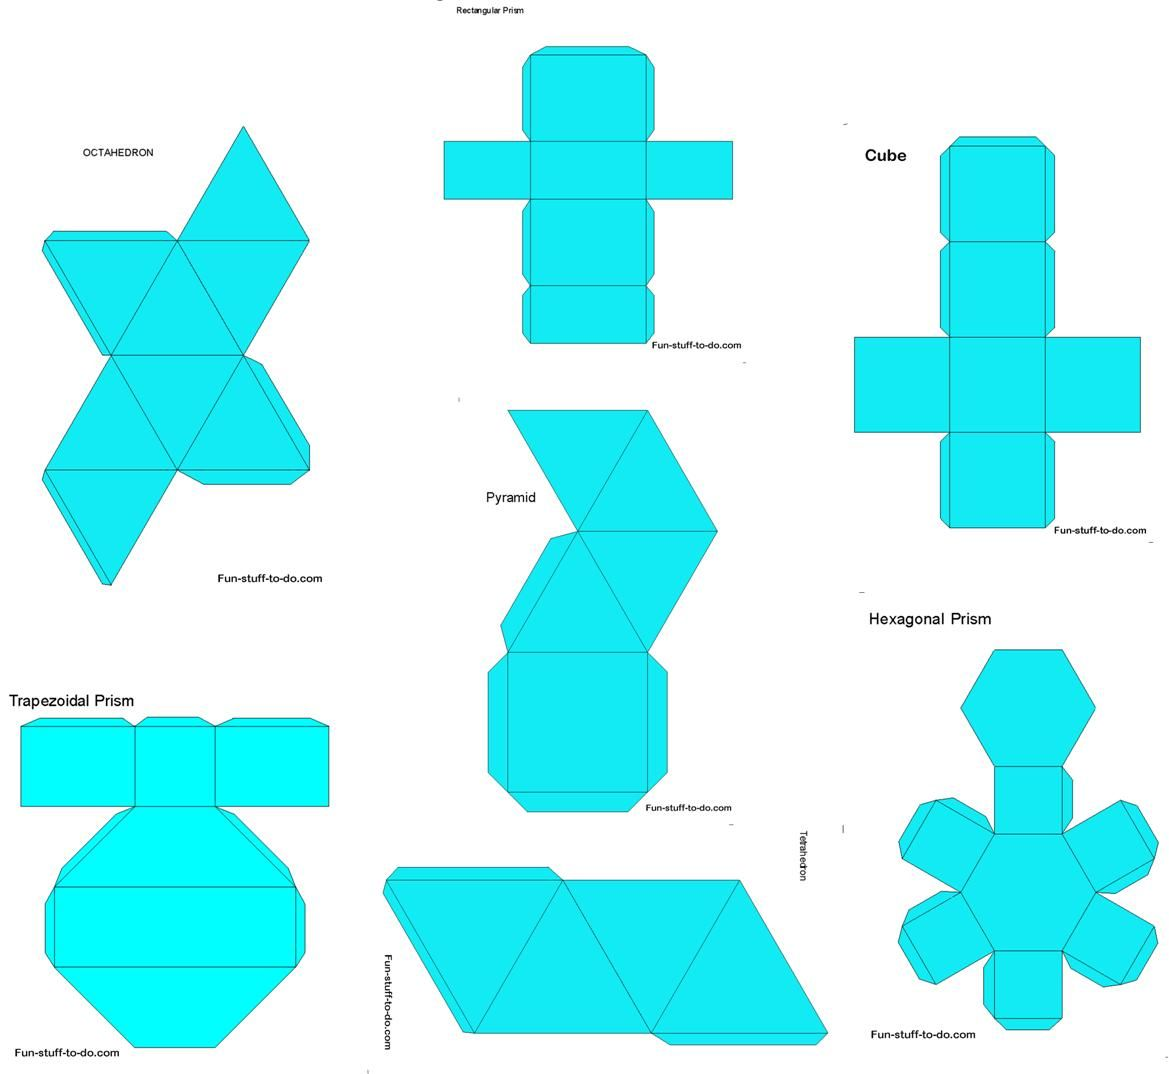 17 Best images about Nets/Templates on Pinterest  3d shapes  printable worksheets, math worksheets, multiplication, education, free worksheets, and worksheets Nets Of 3d Shapes Worksheets 1074 x 1169